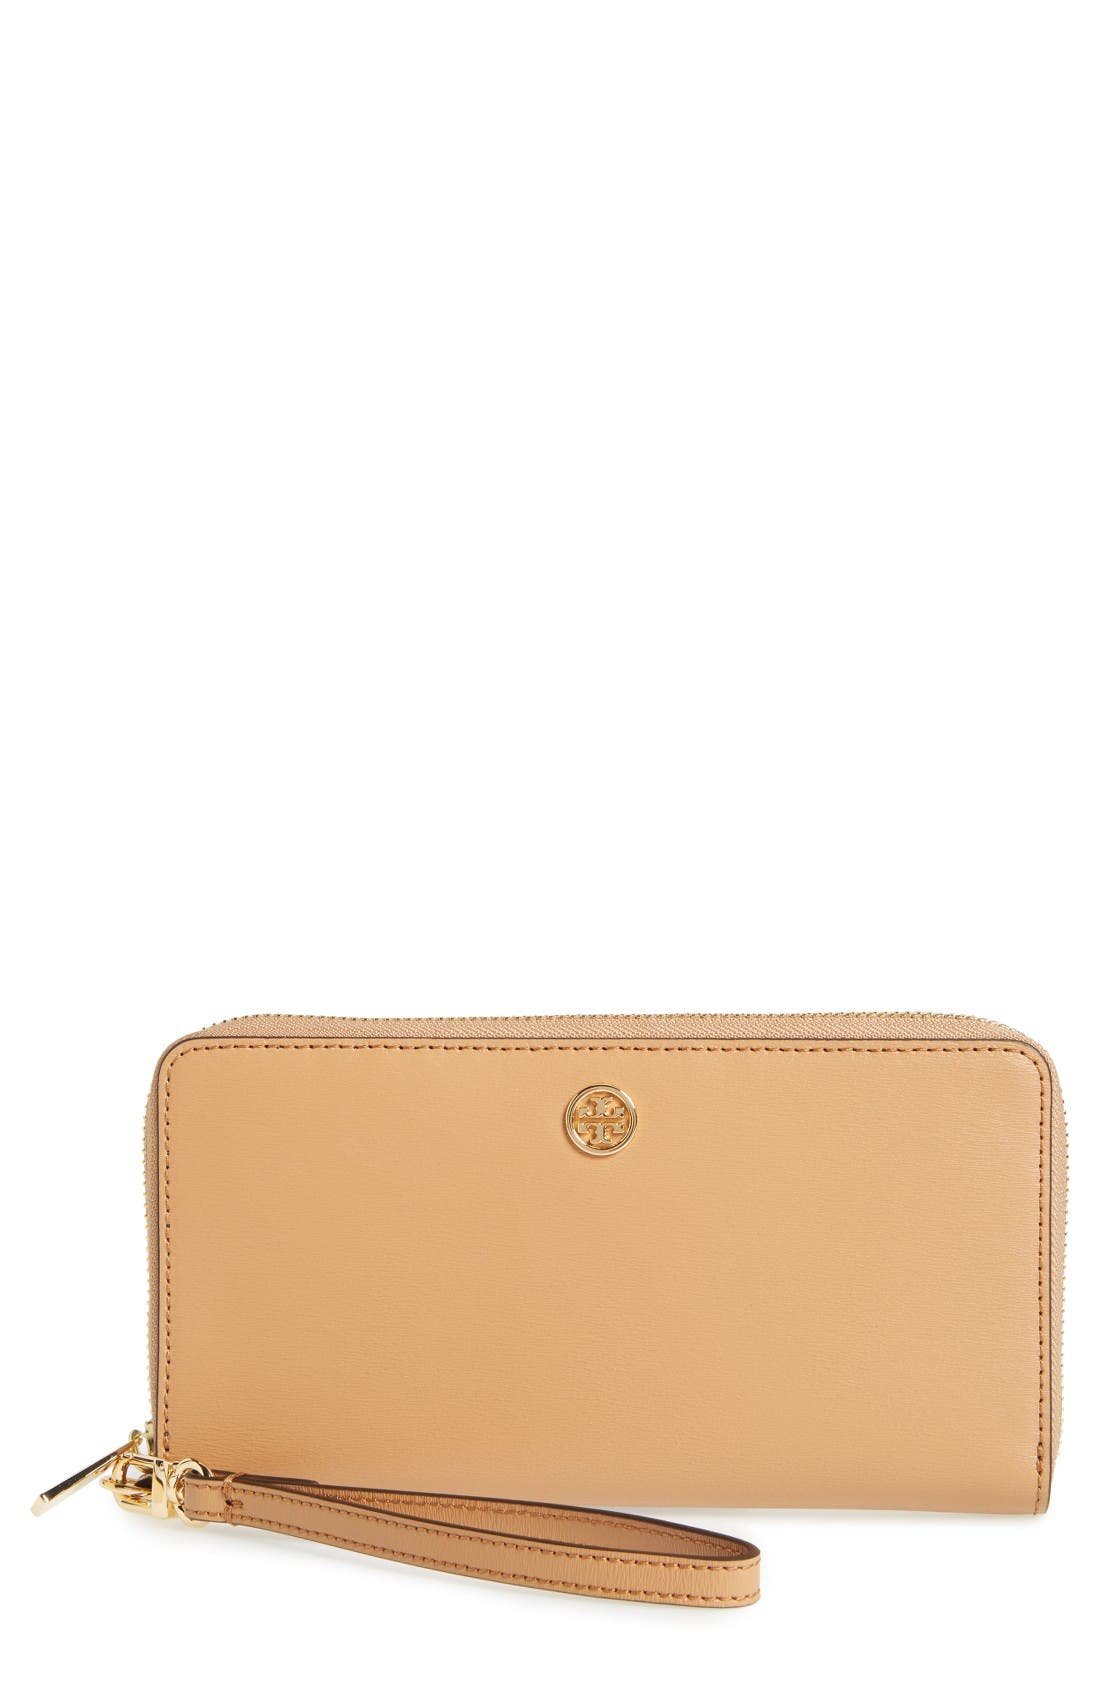 Parker Leather Continental Wallet,                         Main,                         color, Cardamom